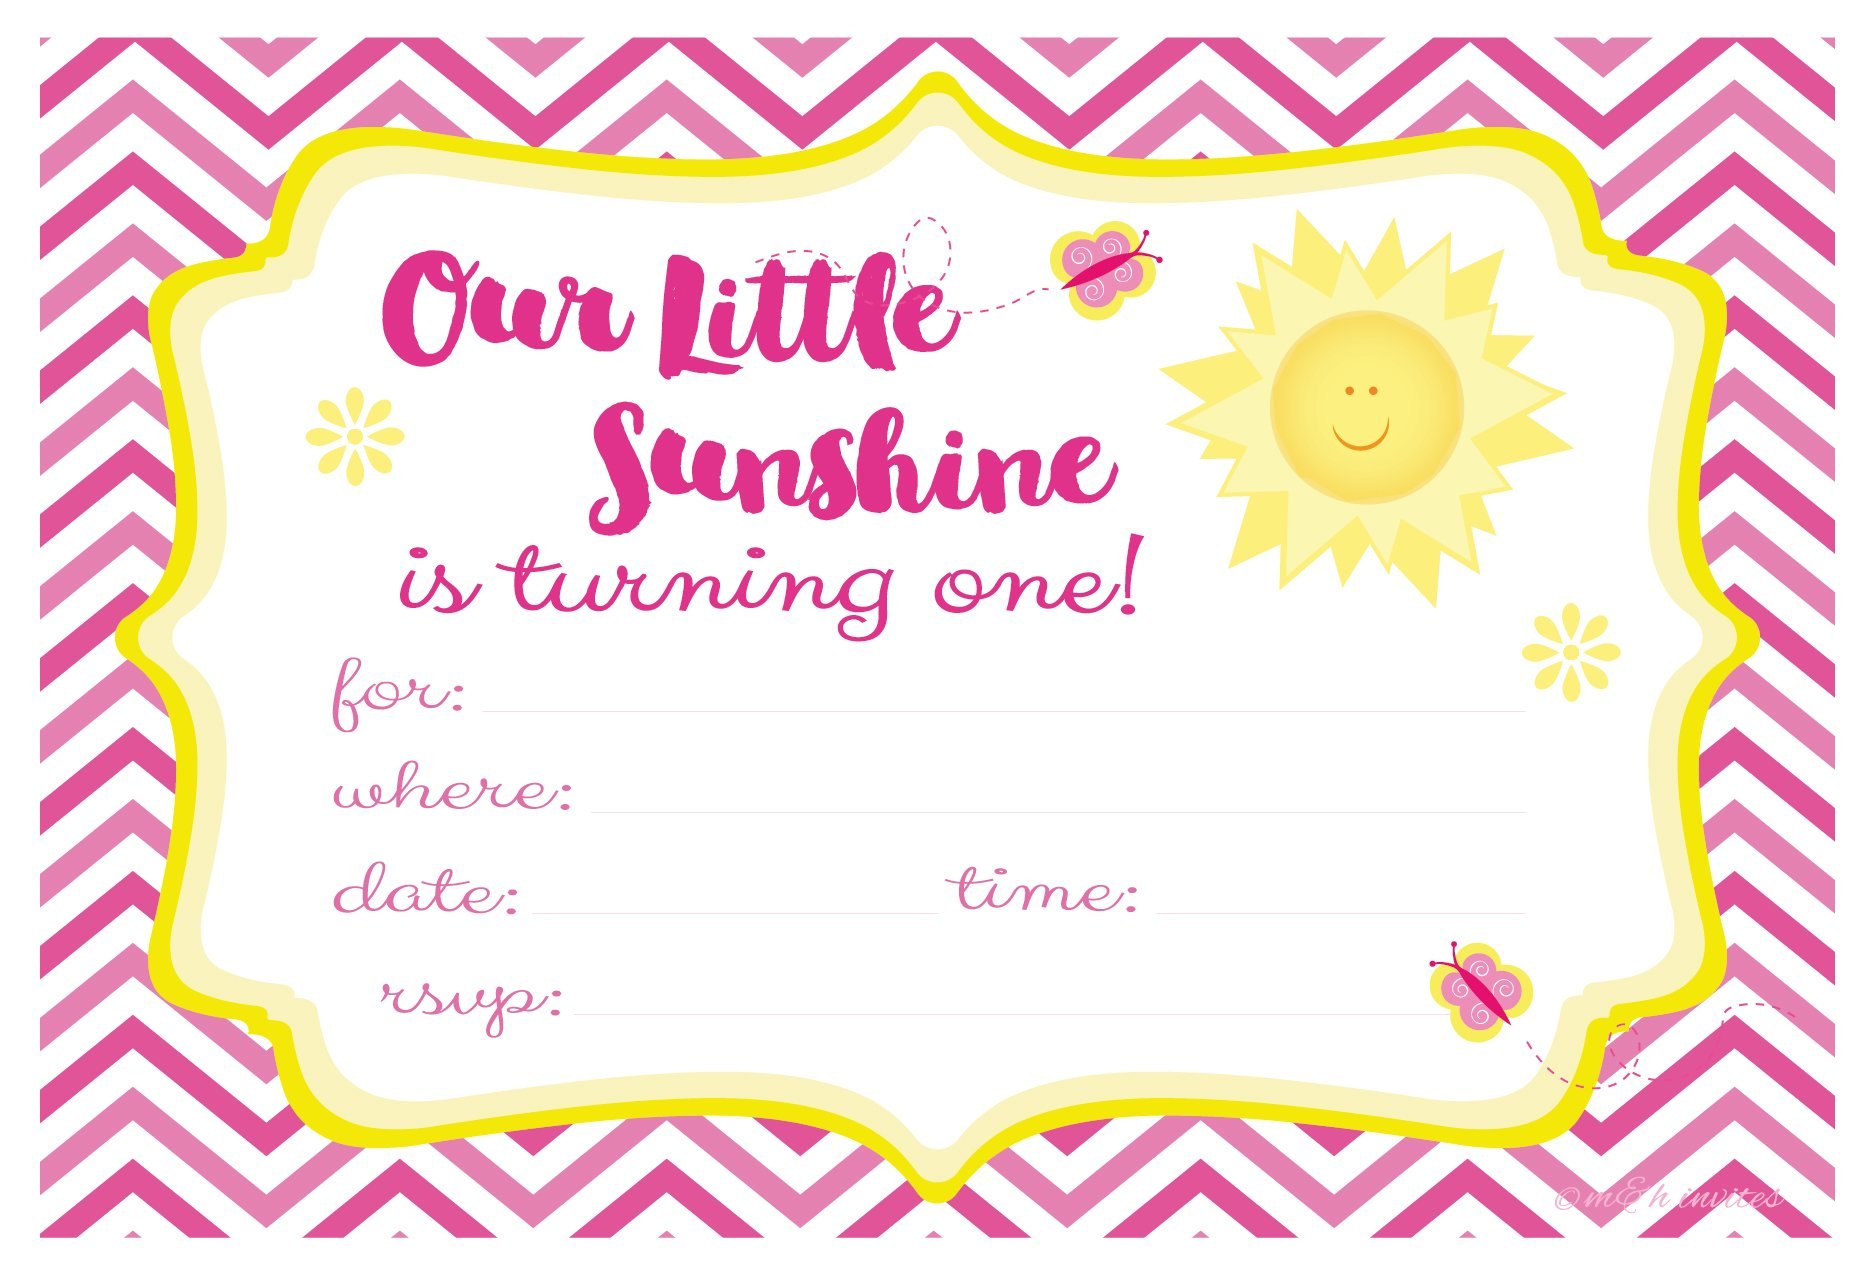 Our Little Sunshine First Birthday Party Invitations - Fill In Style (20 Count) With Envelopes